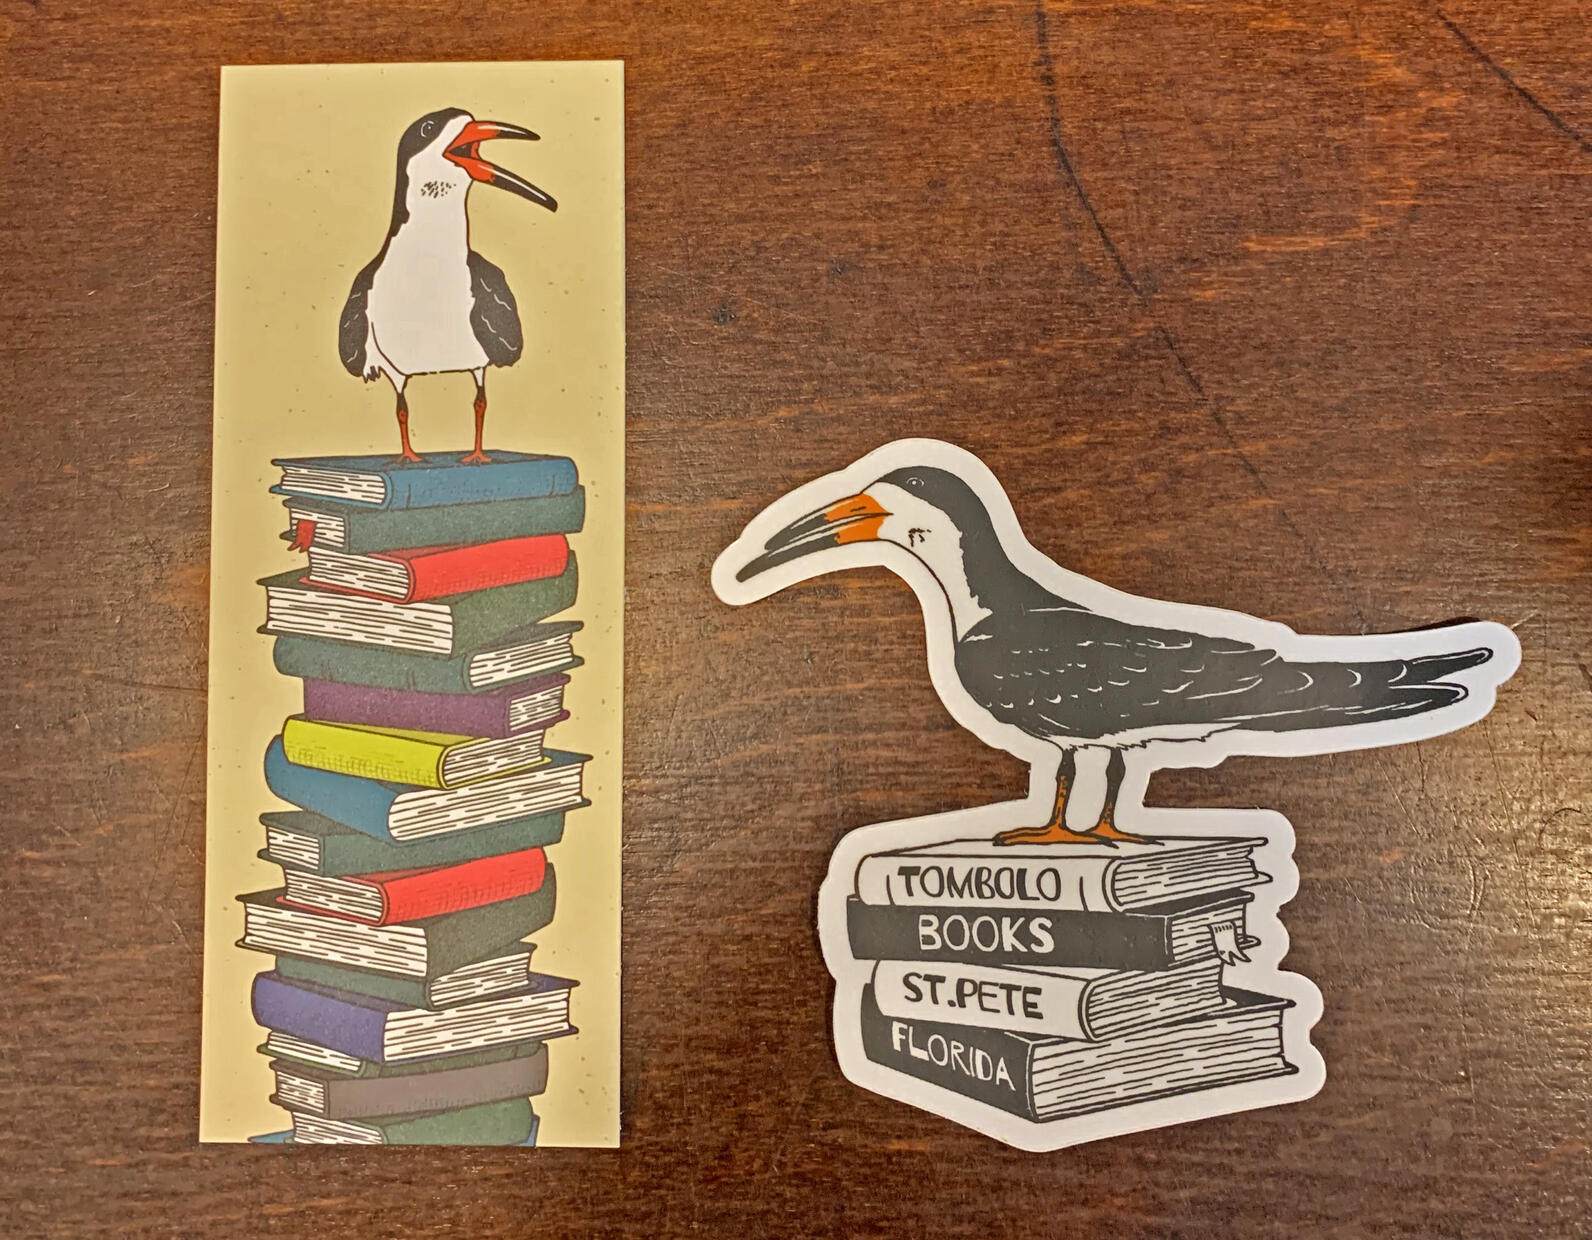 Skimmers on the Tombolo Bookstore stickers.